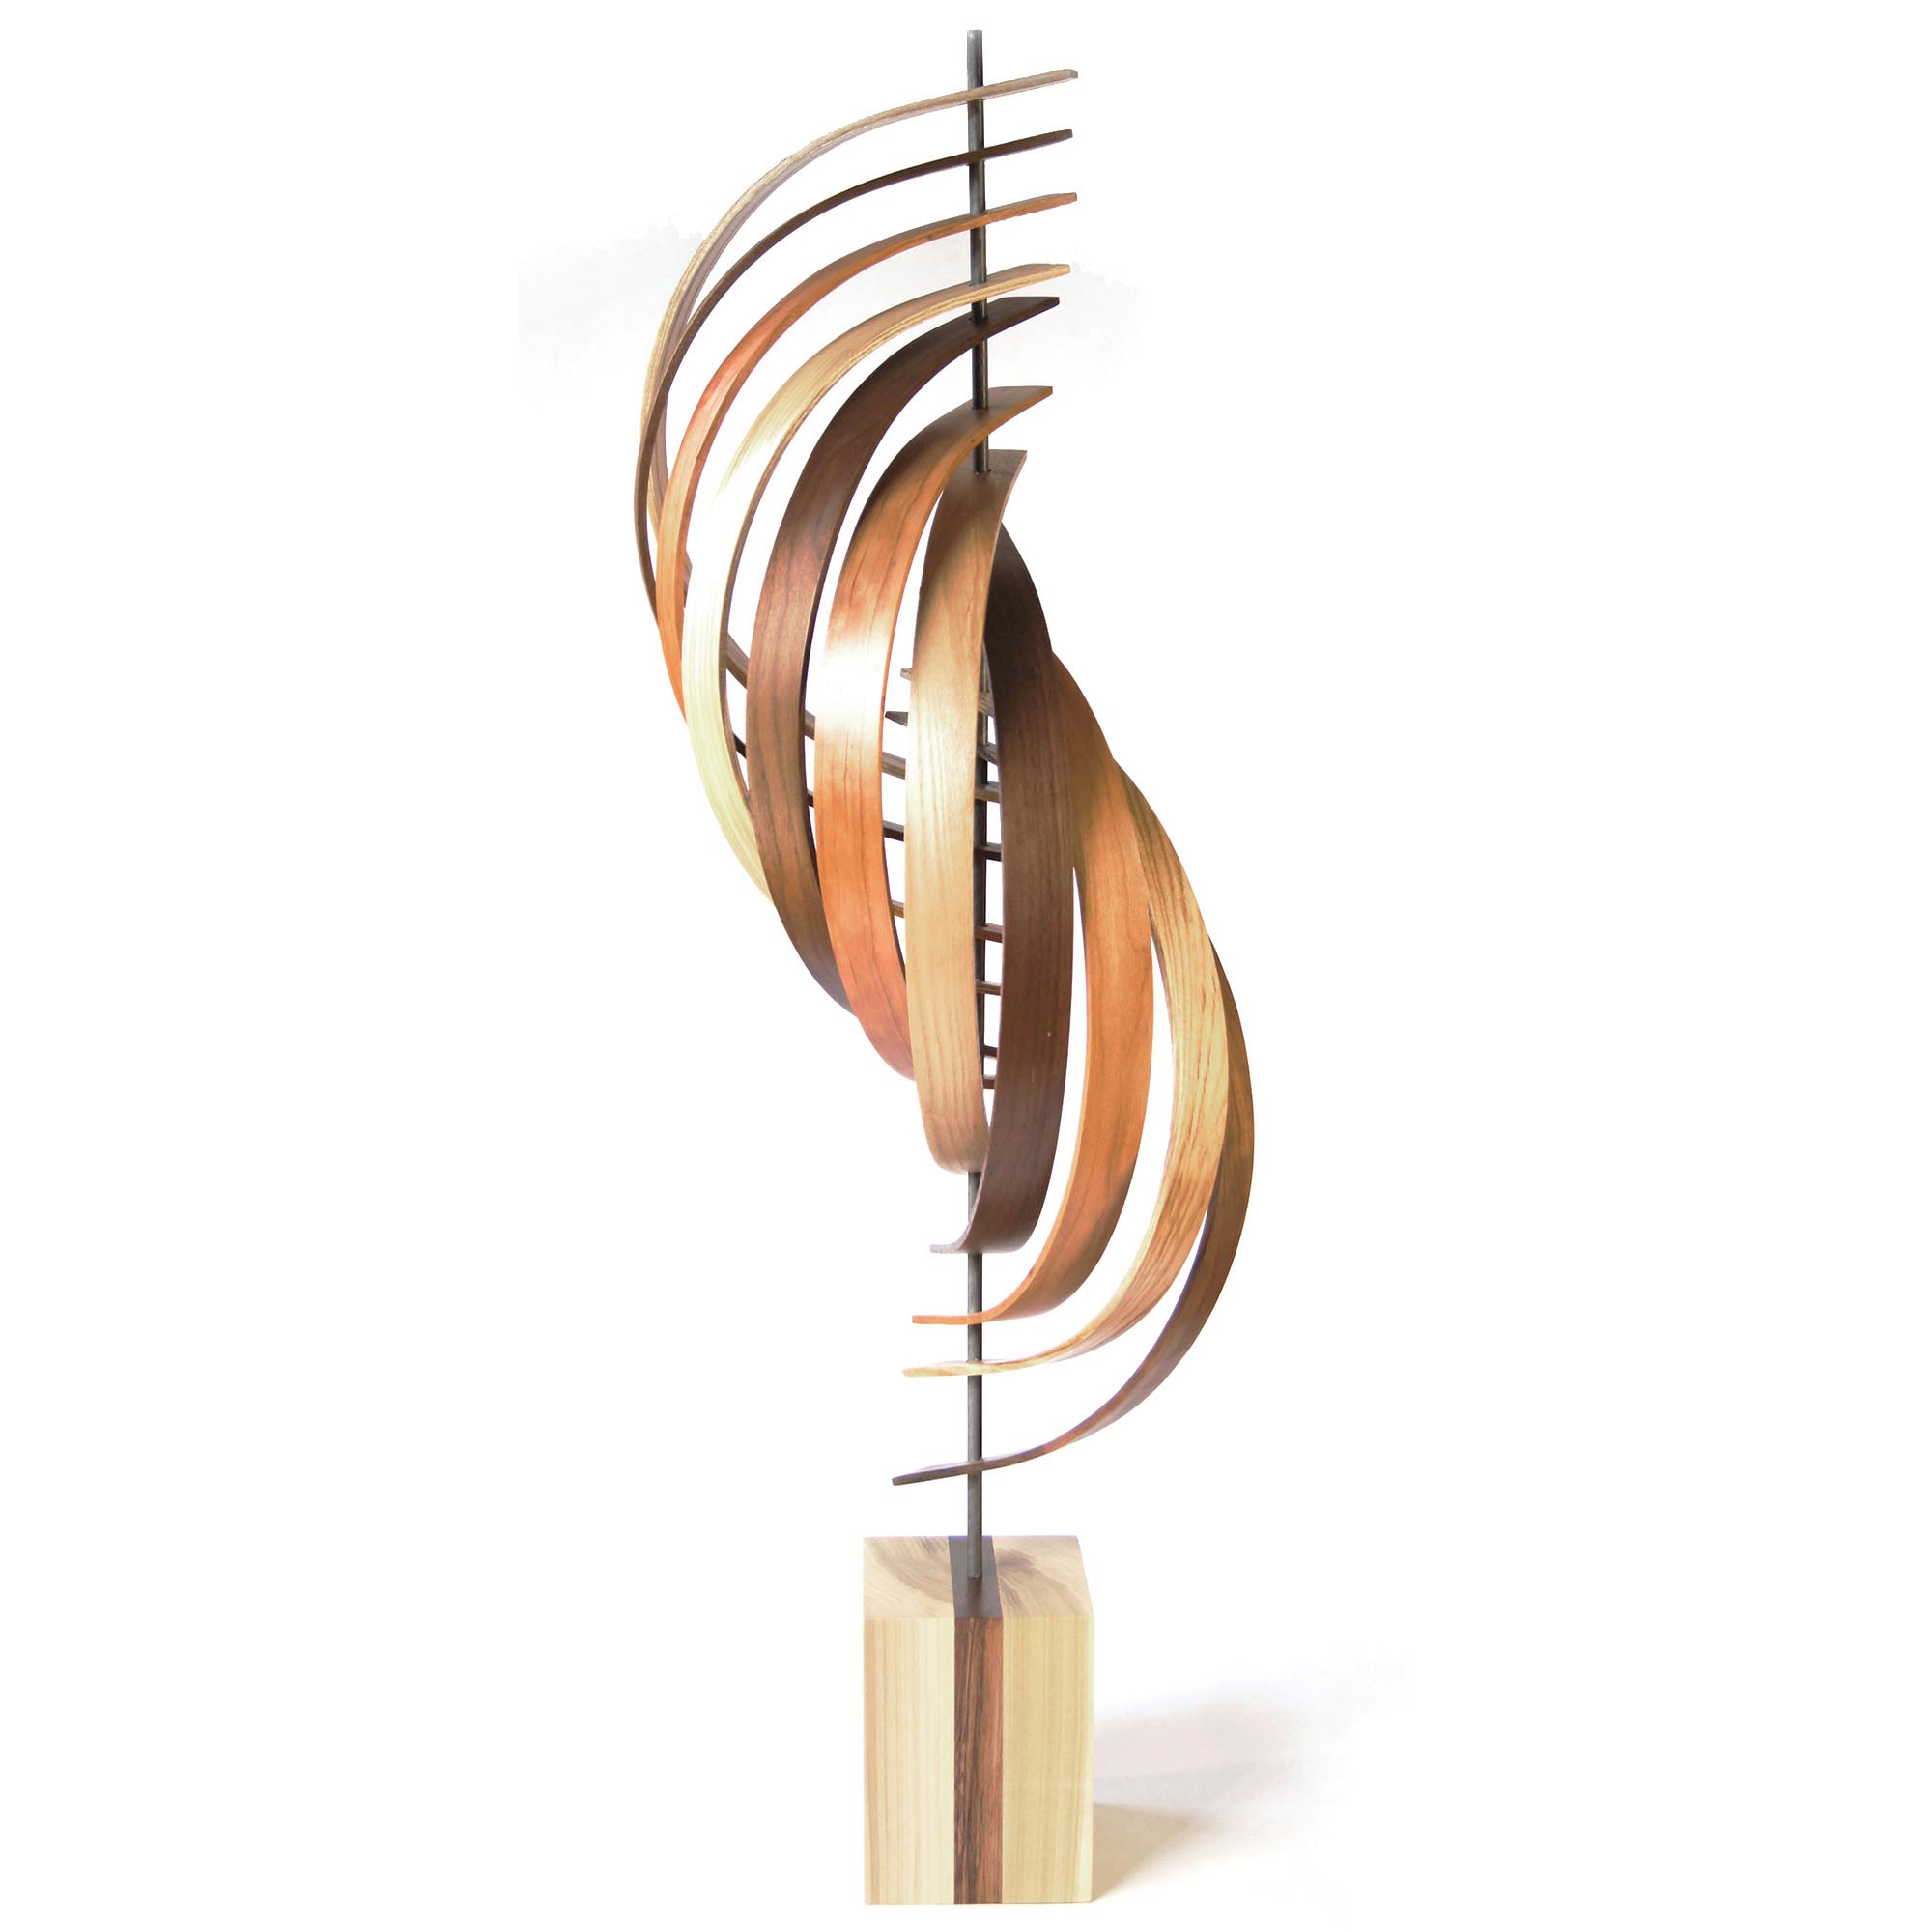 Ascension by Jeff Linenkugel - Modern Wood Sculpture on Natural Wood - Image 2